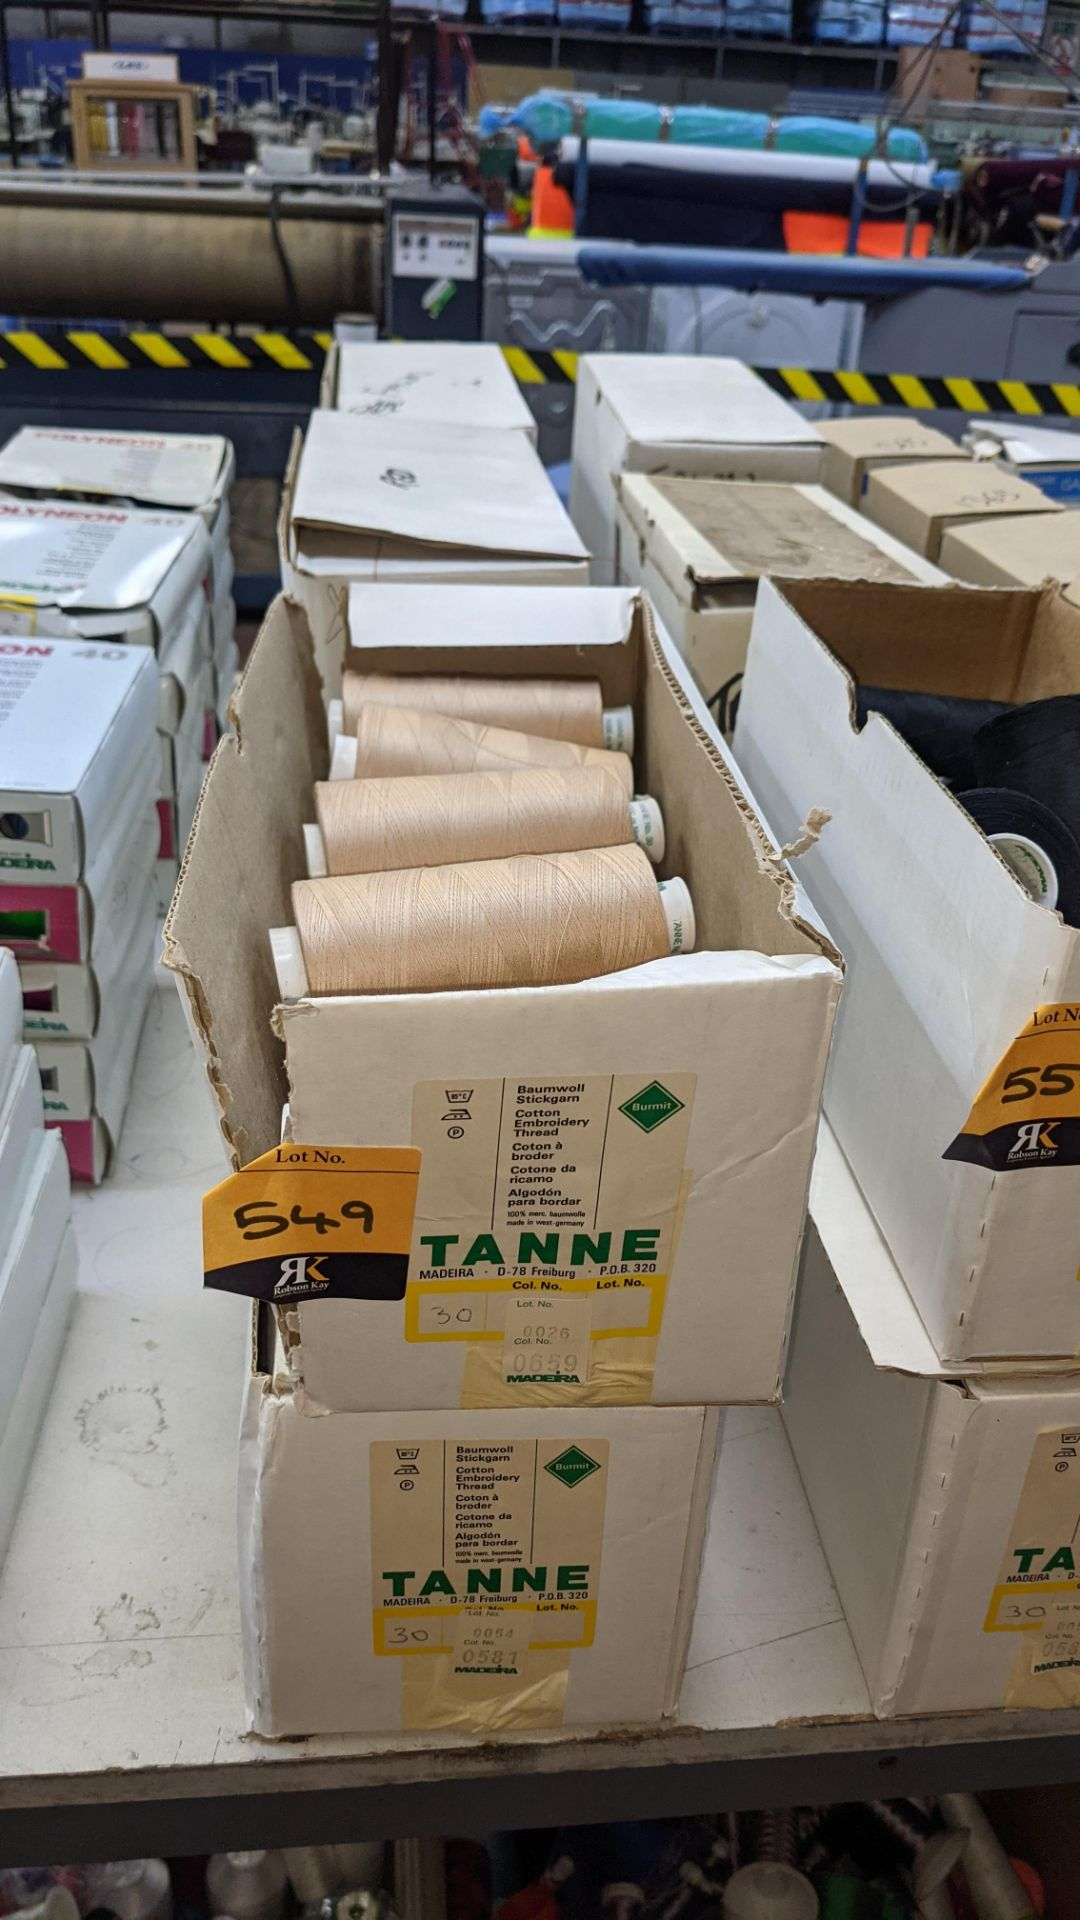 6 boxes of Madeira Tanne cotton embroidery thread - Image 2 of 8